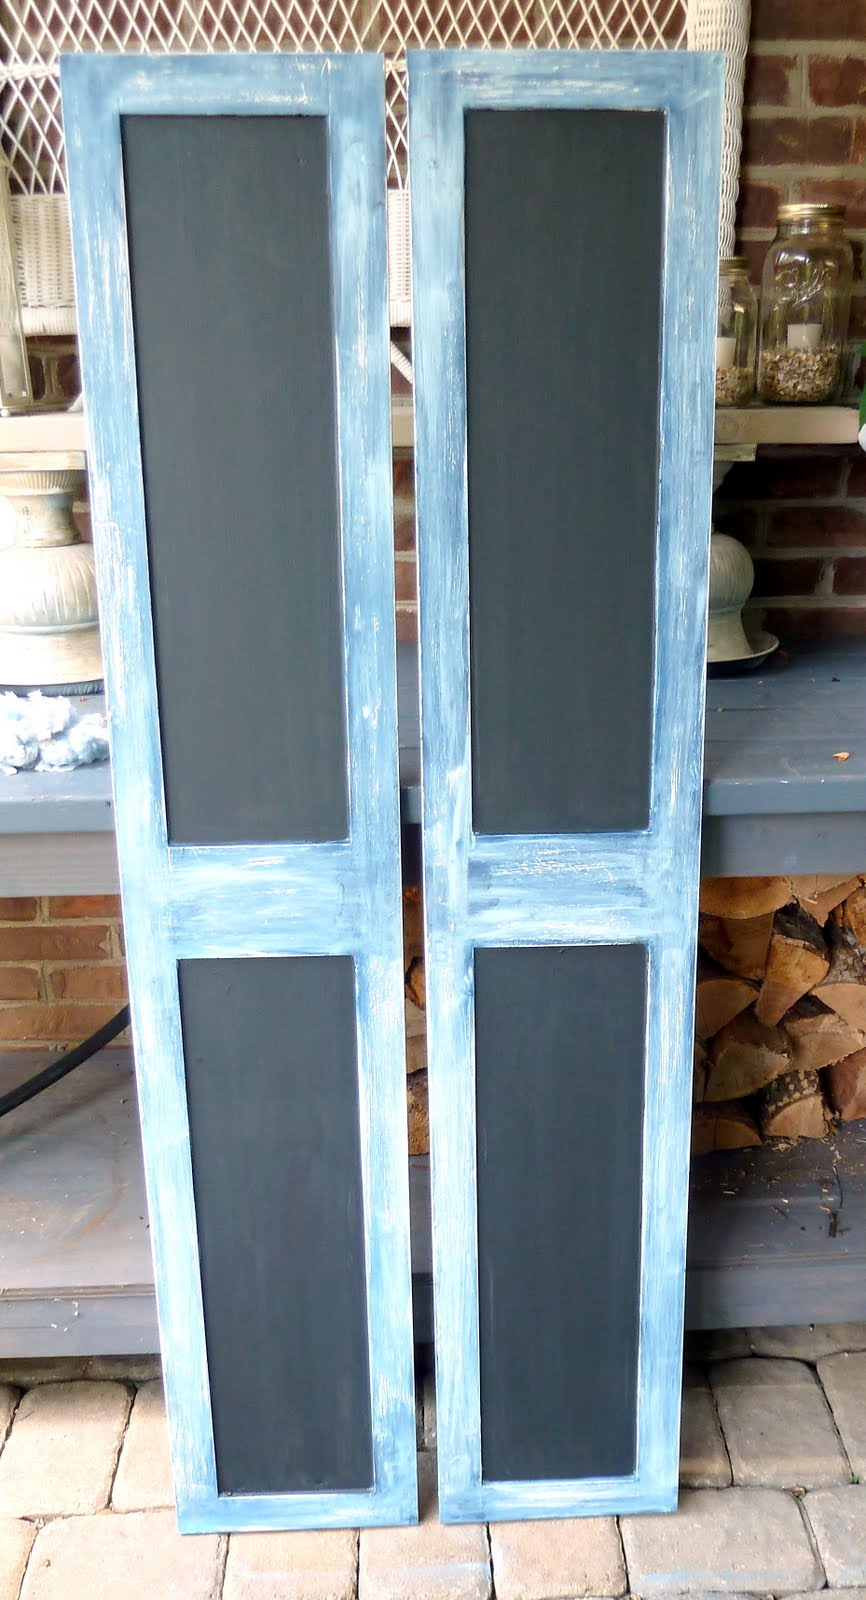 Repurposed Cabinet Doors - Our Fifth House